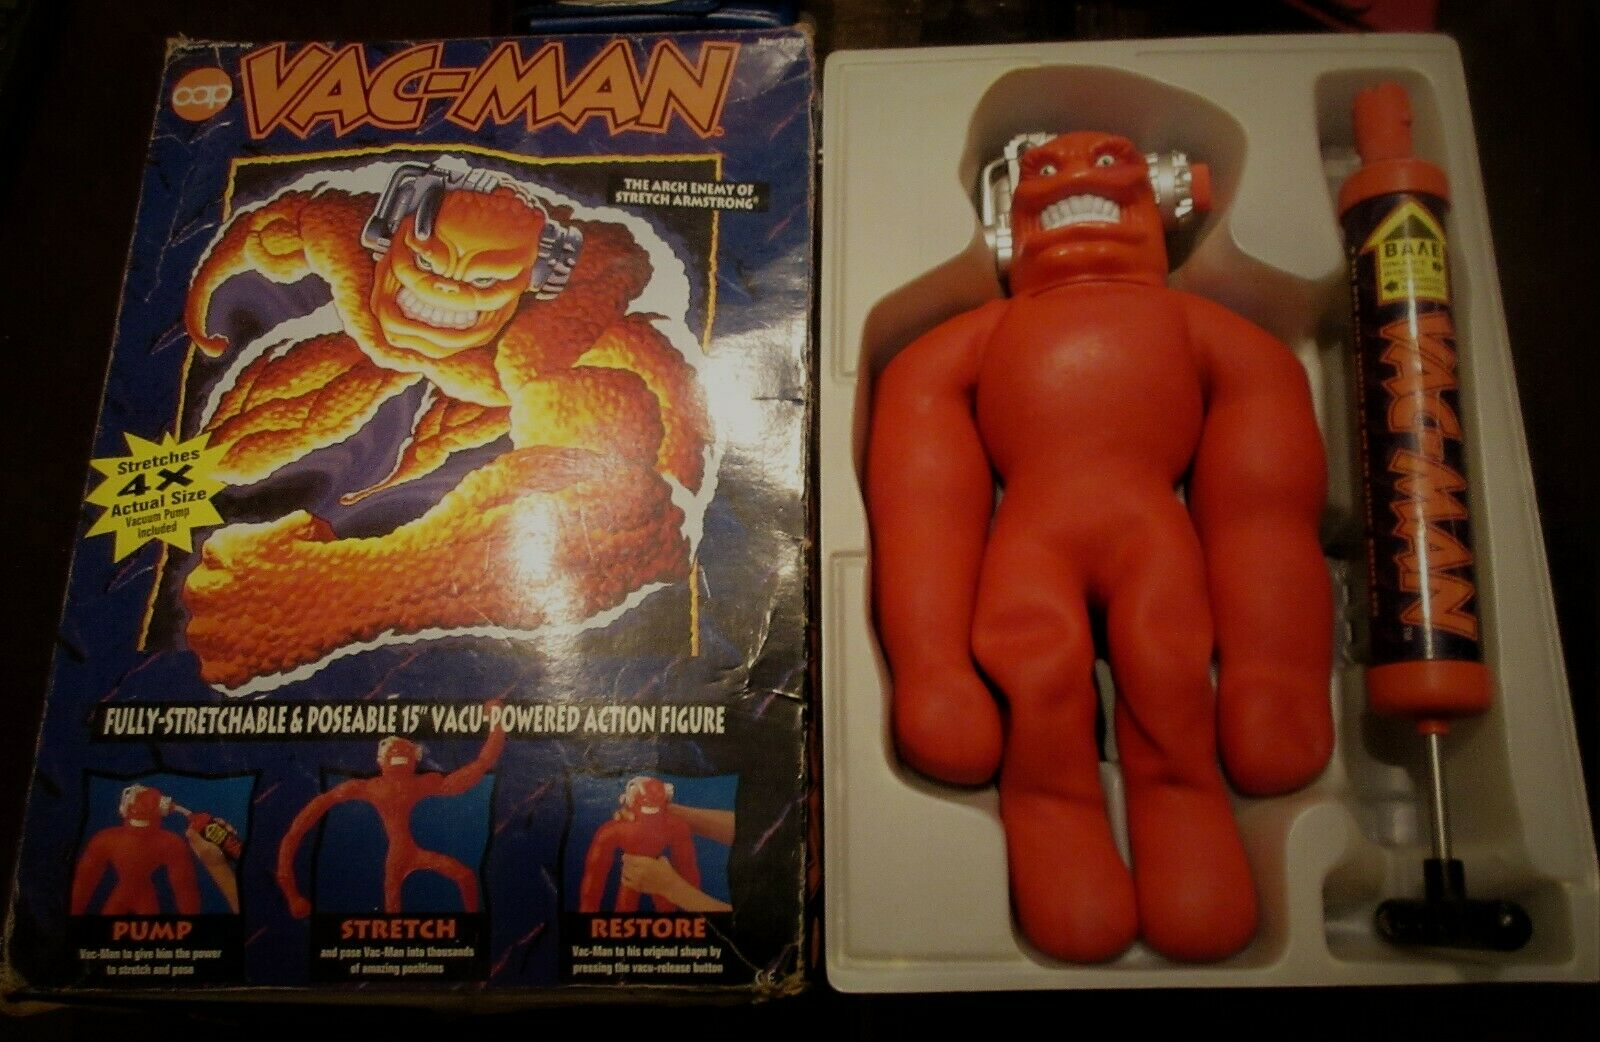 Jahr VAC-MAN Stretch Armstrong Wirkung Figure Cap Spielzeugs Greek Exclusive Primo